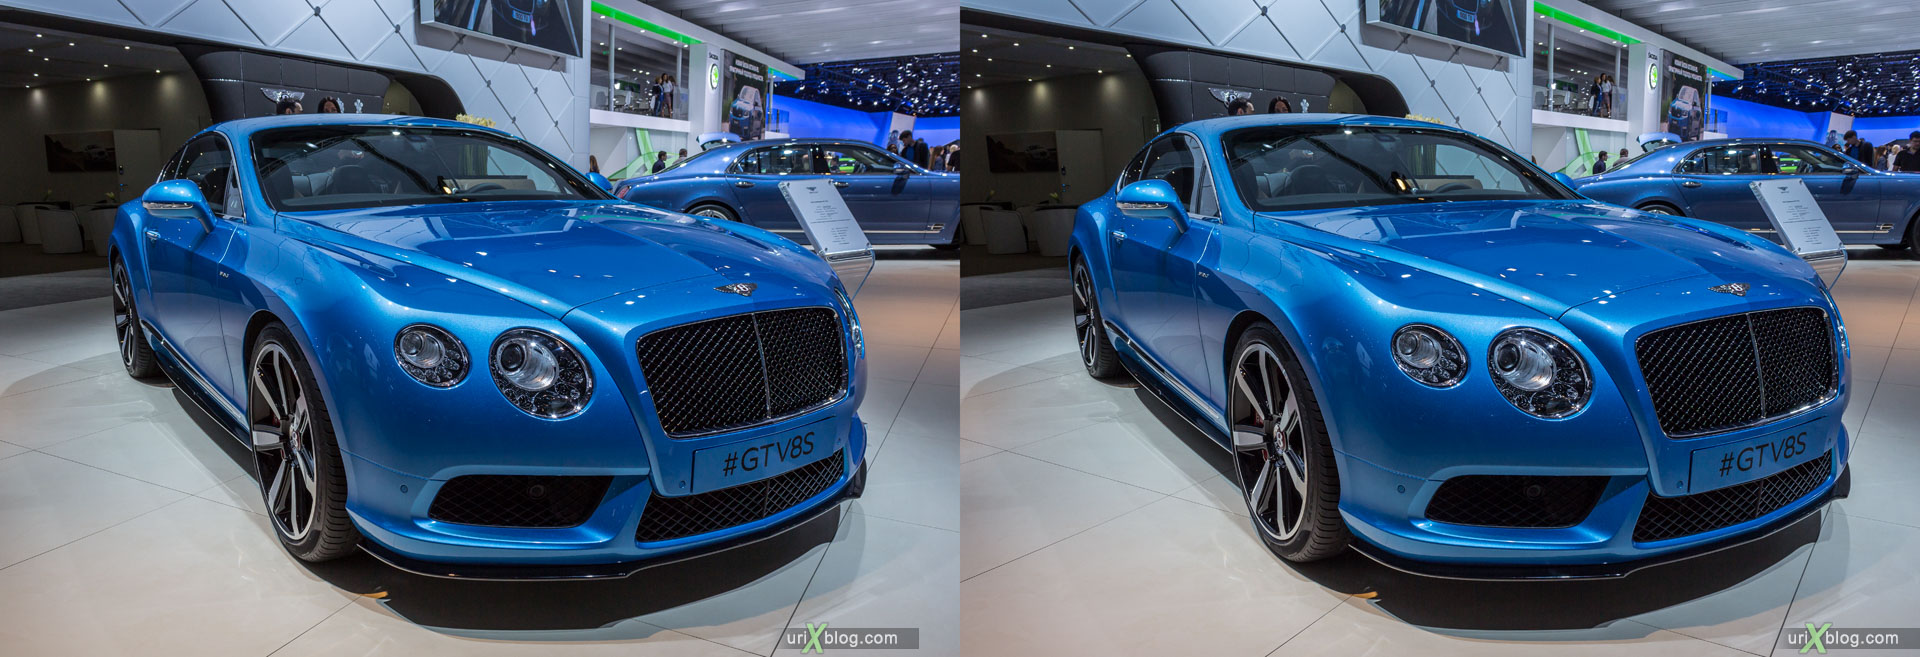 Bentley GTV8S, Moscow International Automobile Salon 2014, MIAS 2014, girls, models, Crocus Expo, Moscow, Russia, 3D, stereo pair, cross-eyed, crossview, cross view stereo pair, stereoscopic, 2014